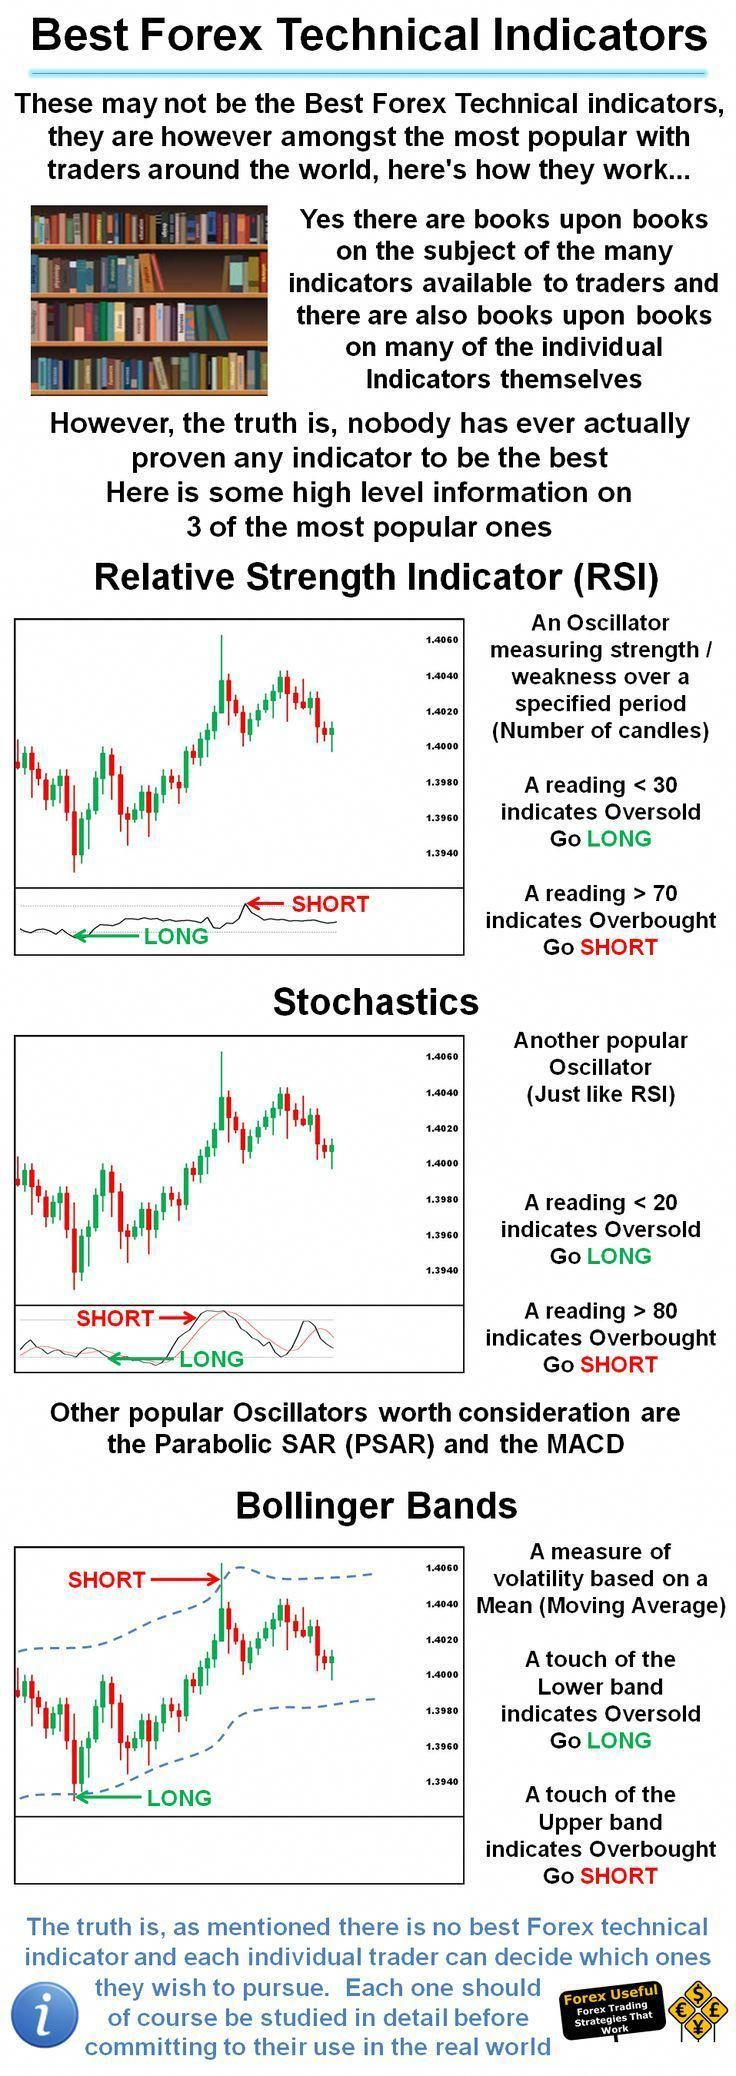 Top Forex Technical Indicators and their Real time accuracy analysis. The truth you need to know!